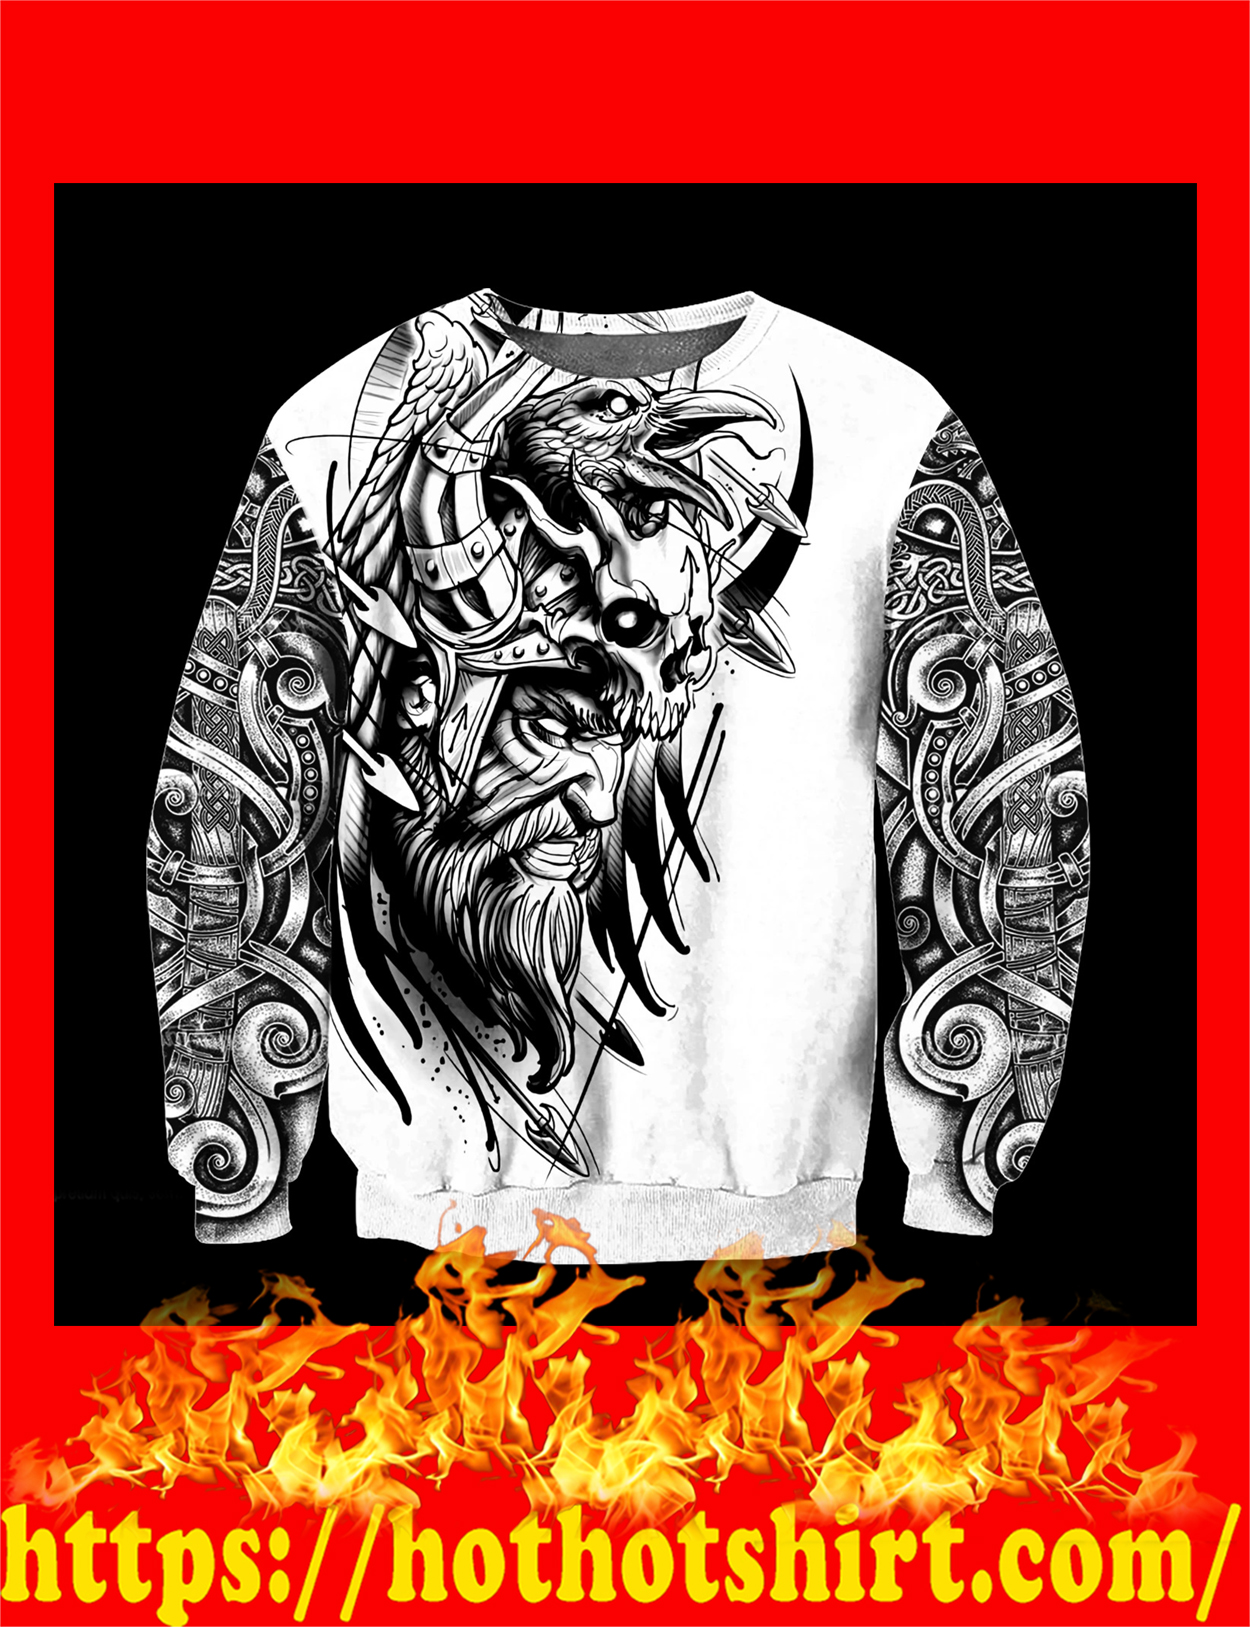 Love viking tattoos 3d all over printed sweatshirt